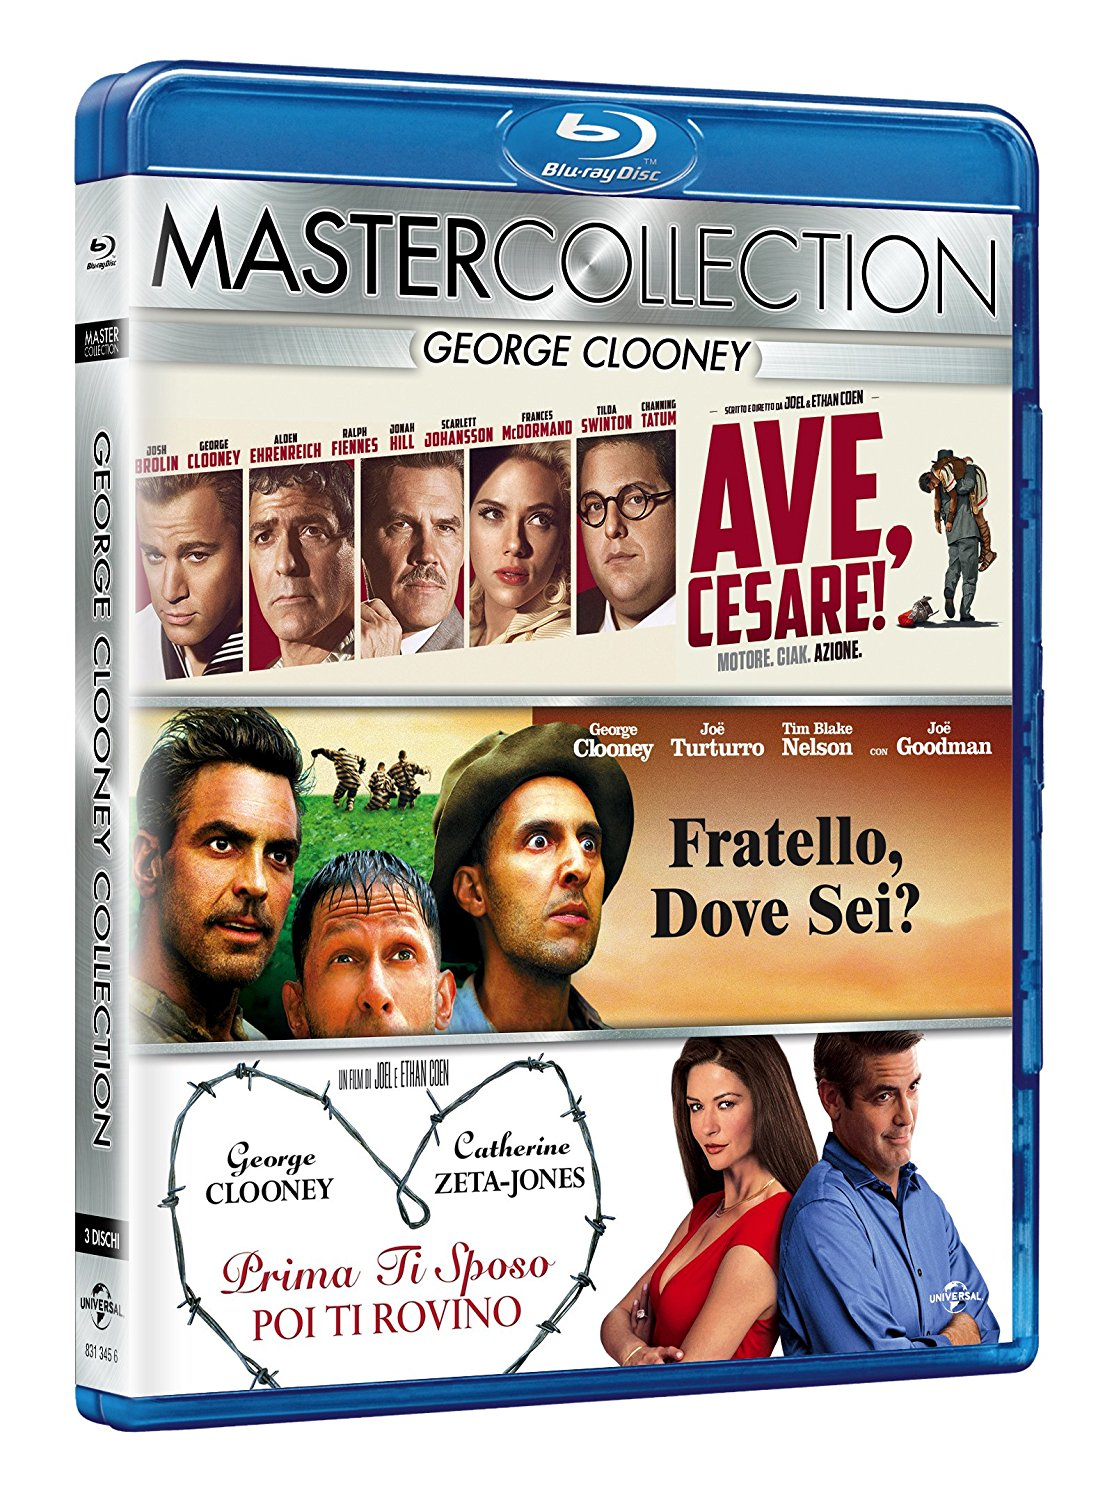 COF.GEORGE CLOONEY MASTER COLLECTION (3 BLU-RAY)